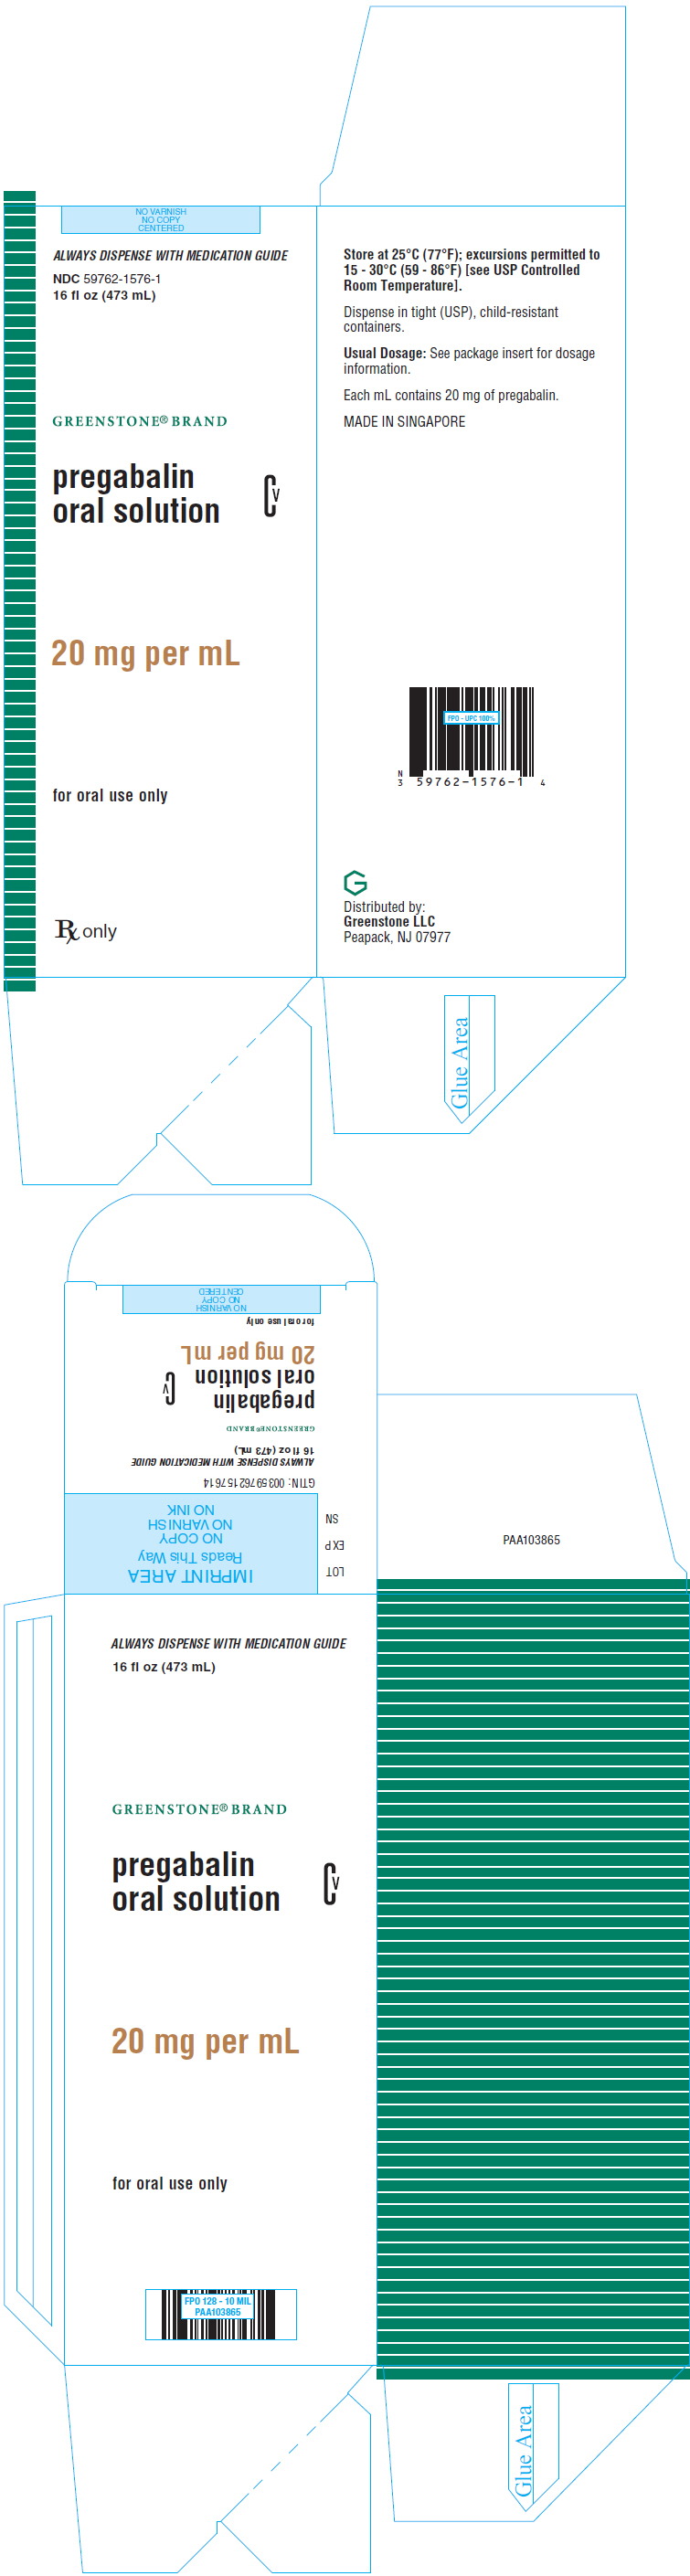 PRINCIPAL DISPLAY PANEL - 473 mL  Bottle Carton